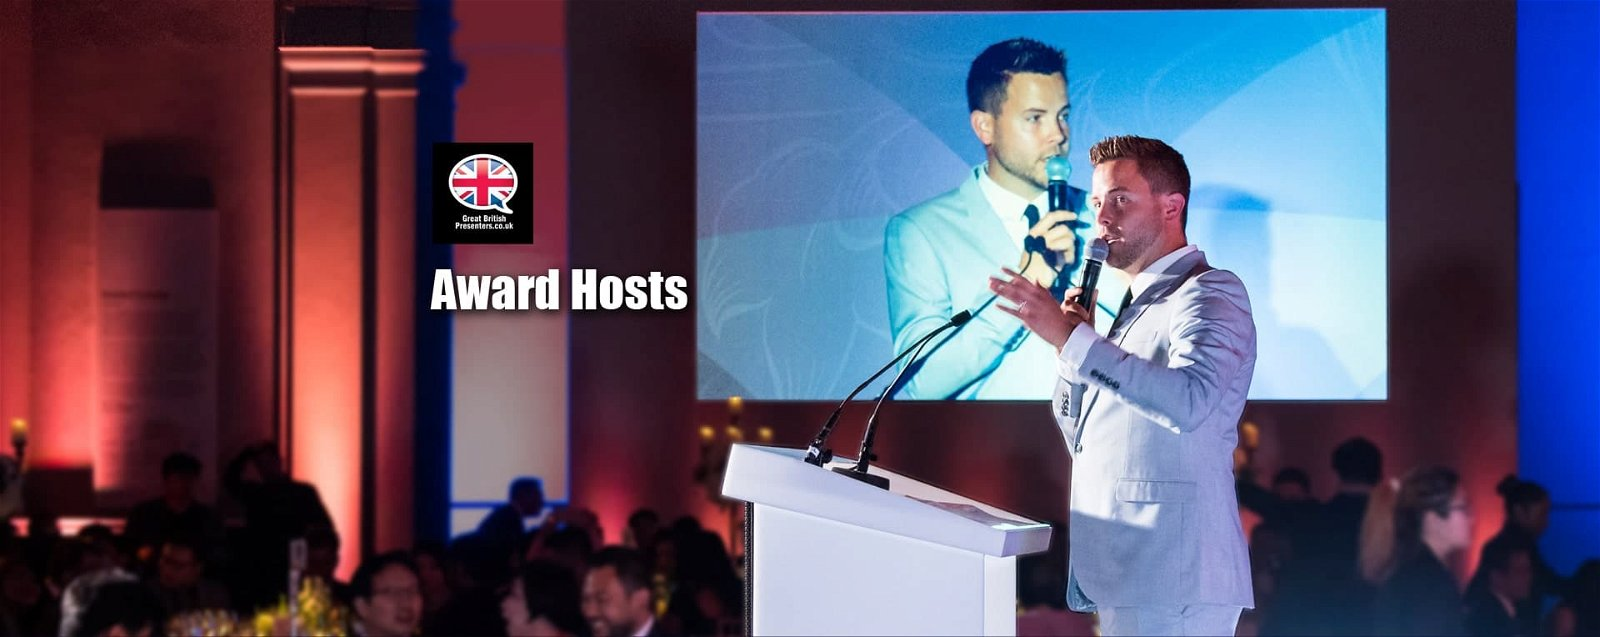 International Professional corporate Award live Hosts at Great British Presenters-min